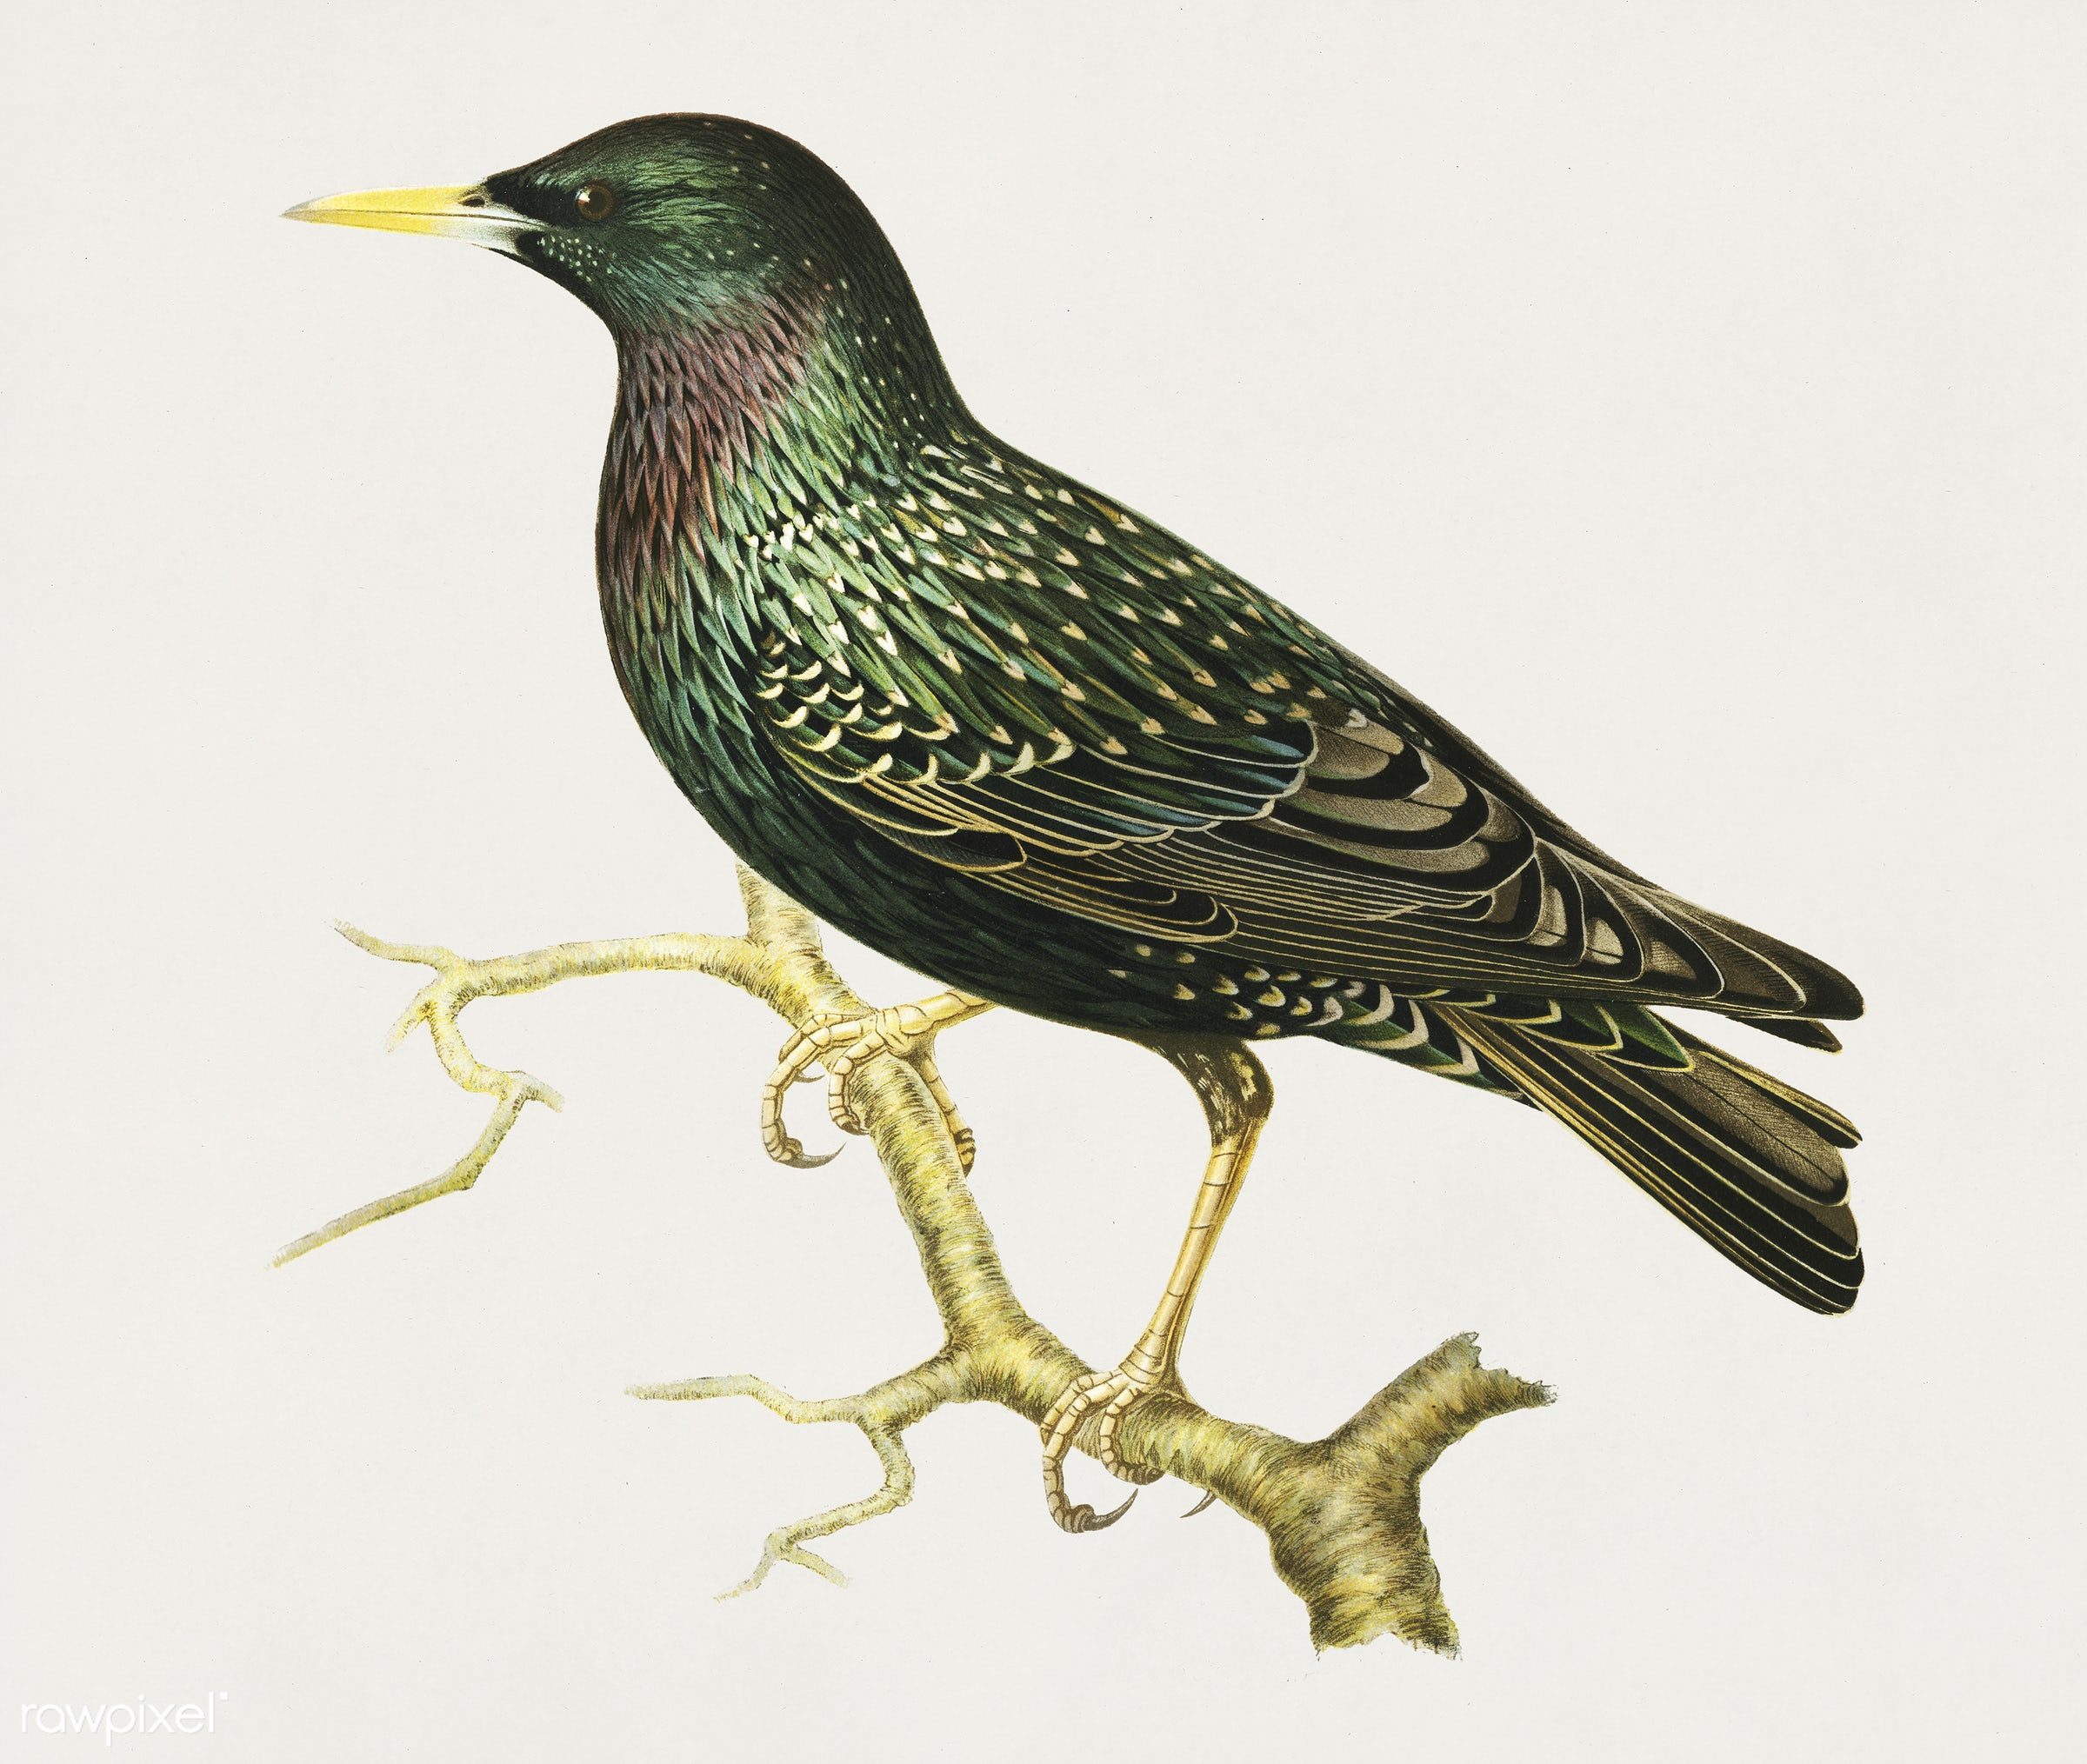 European Starling (Sturnus vulgaris) illustrated by the von Wright brothers. Digitally enhanced from our own 1929 folio...